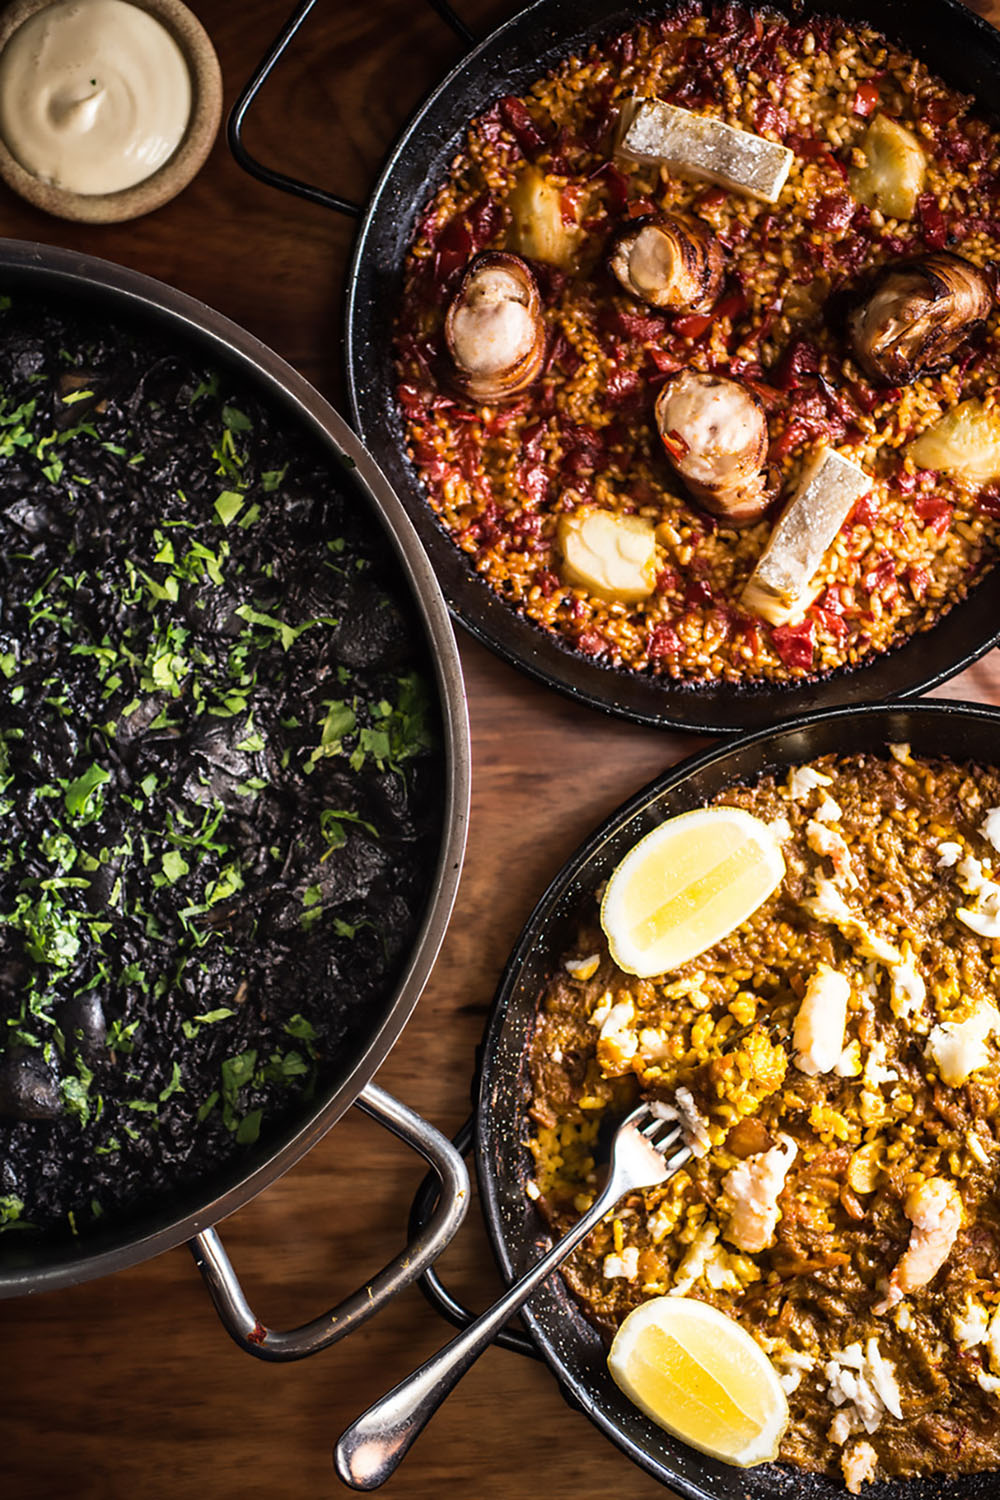 Rice Dishes Movida Aqui Spring 2014. Copyright Richard Cornish 2014. All Rights Reserved-9 copy.jpg